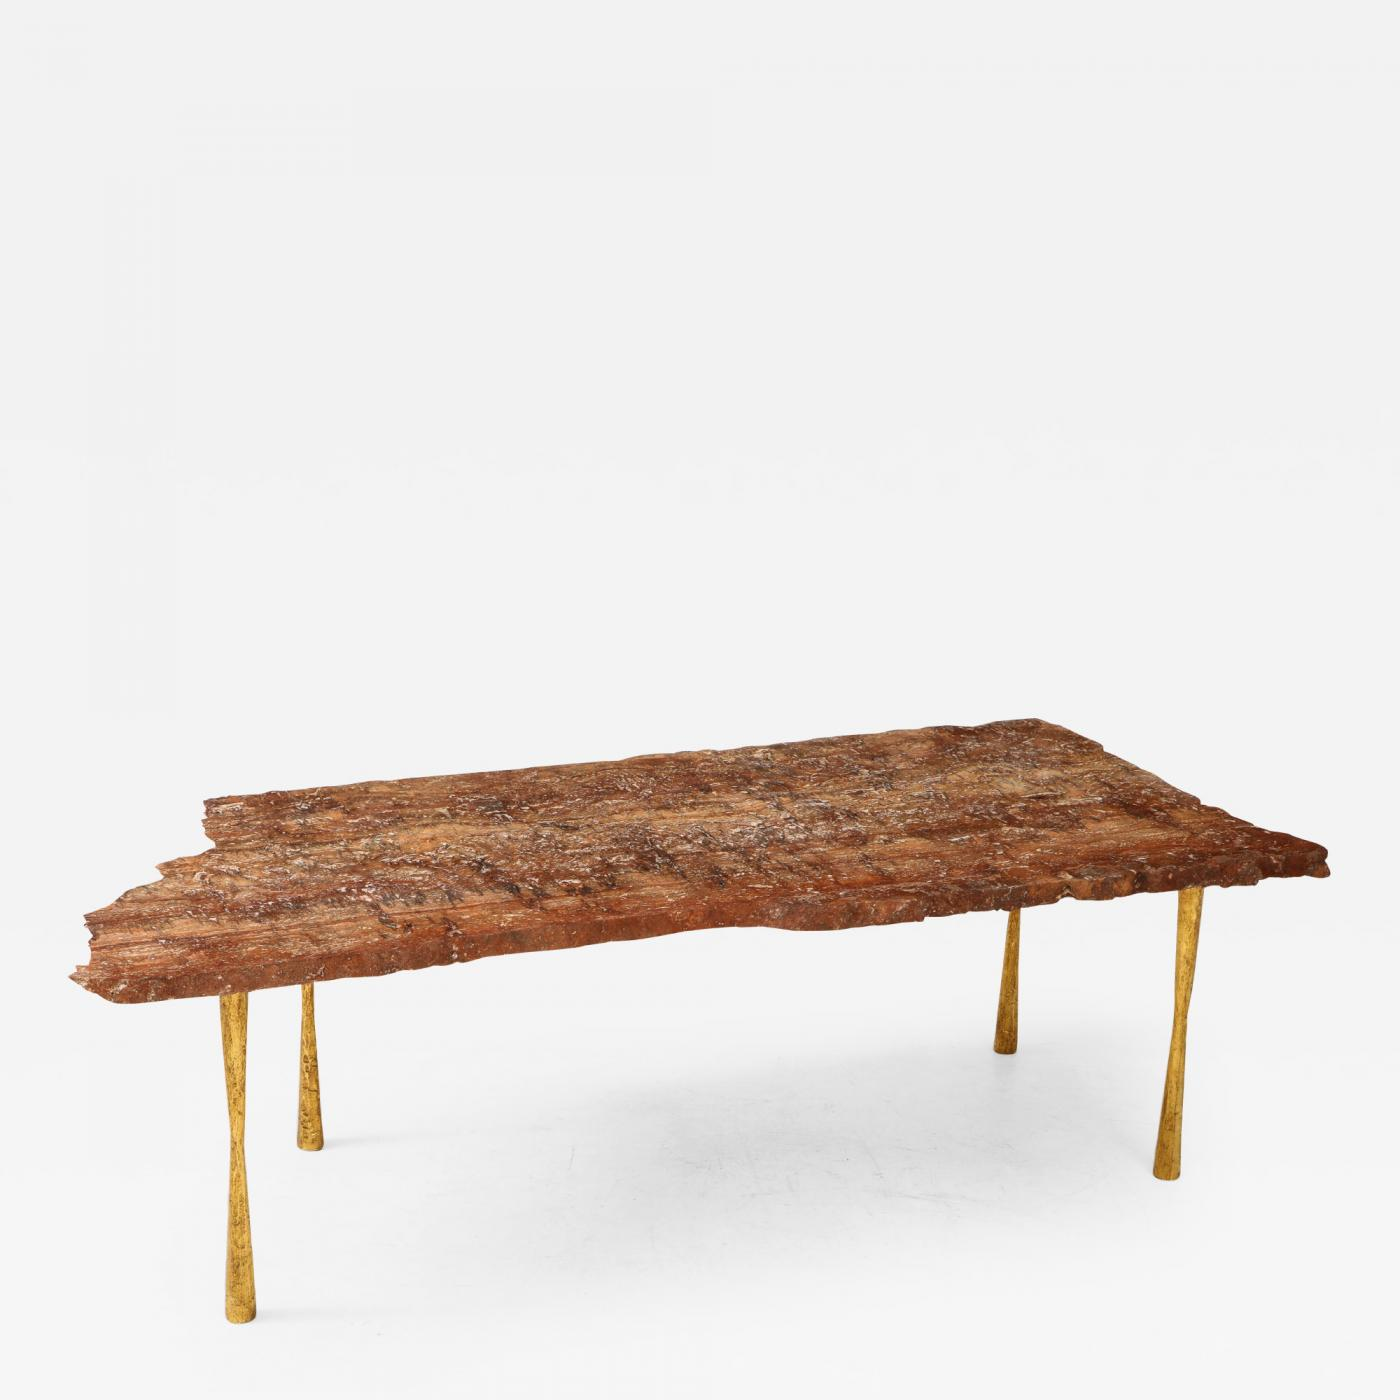 Red Travertine Natural Edge Slab Stone And Gold Leaf Coffee Table Italy